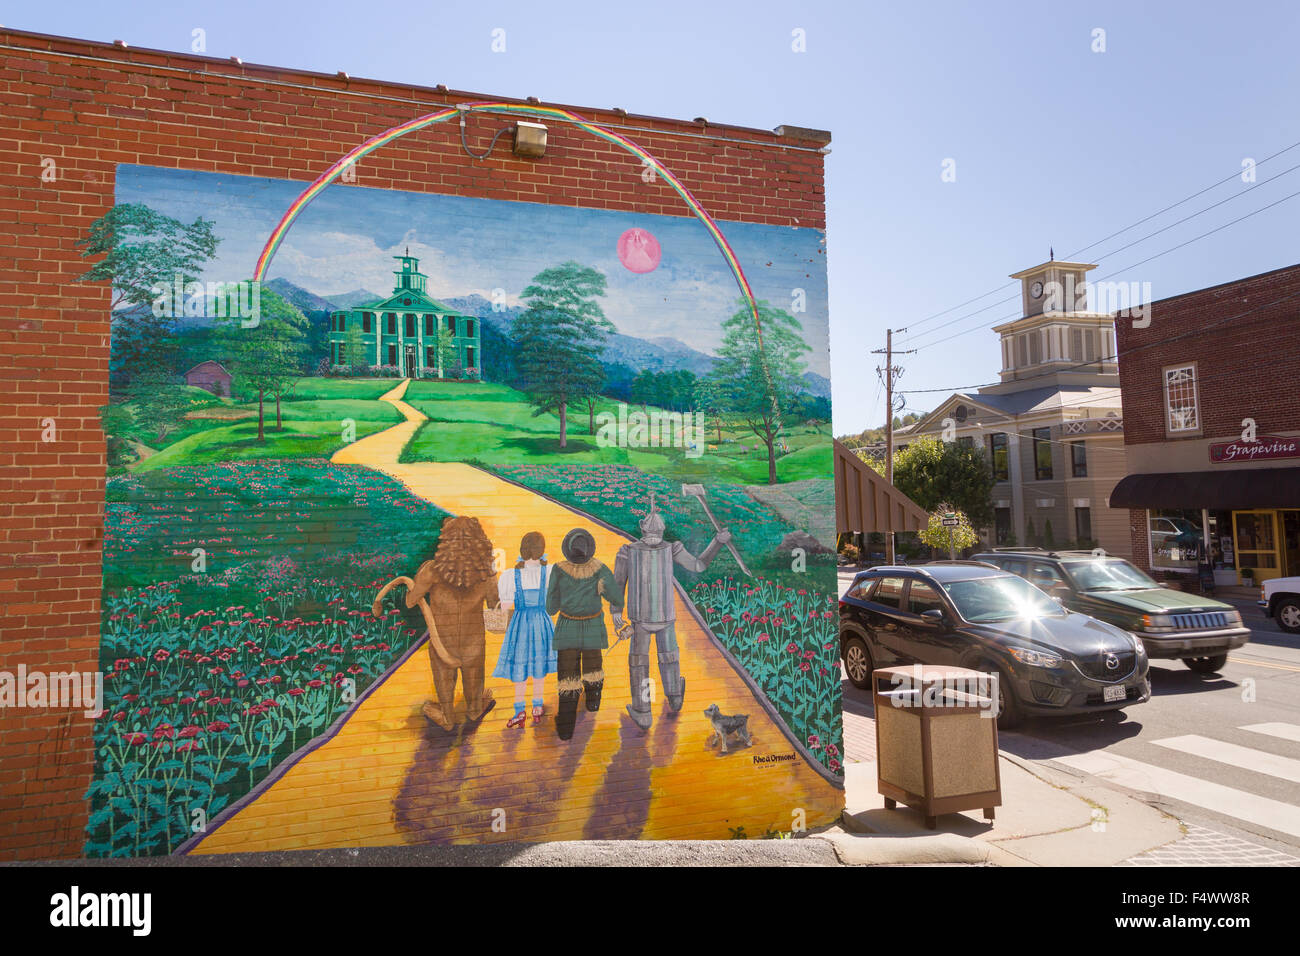 A Mural Of The The Wizard Of Oz Painted On The Side Of A Building In The  Tiny Village Of Burnsville, North Carolina. Burnsville Is The Start Of The  Quilt ... Part 40